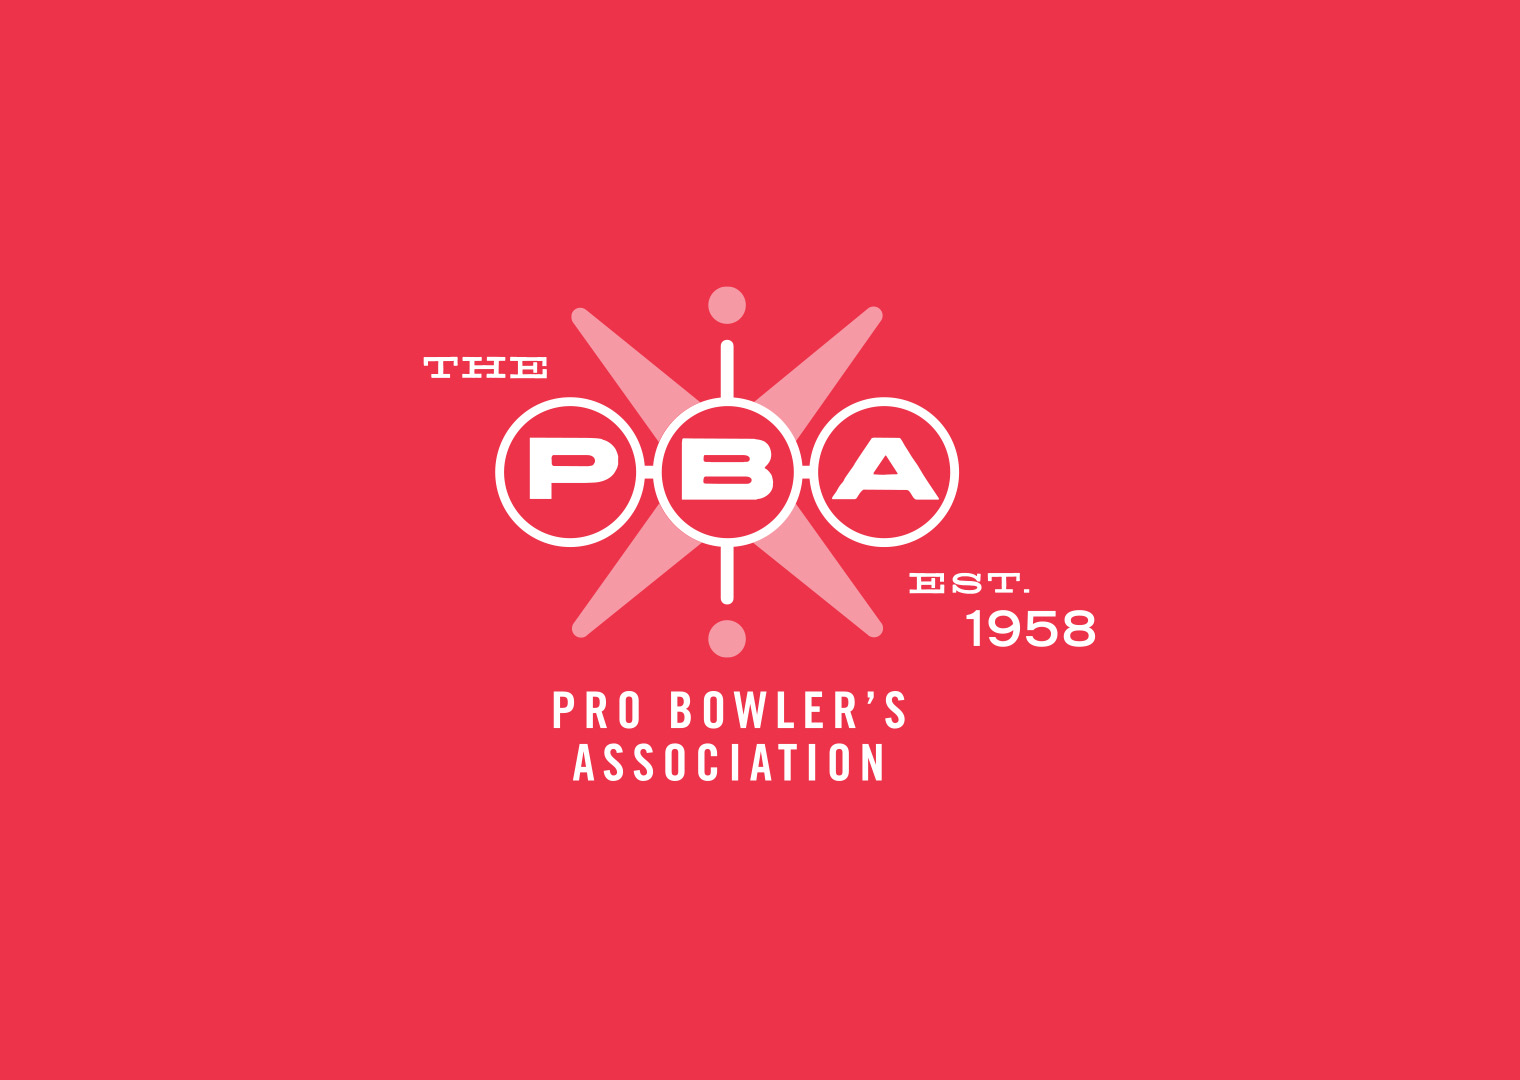 Pro Bowler's Association logo